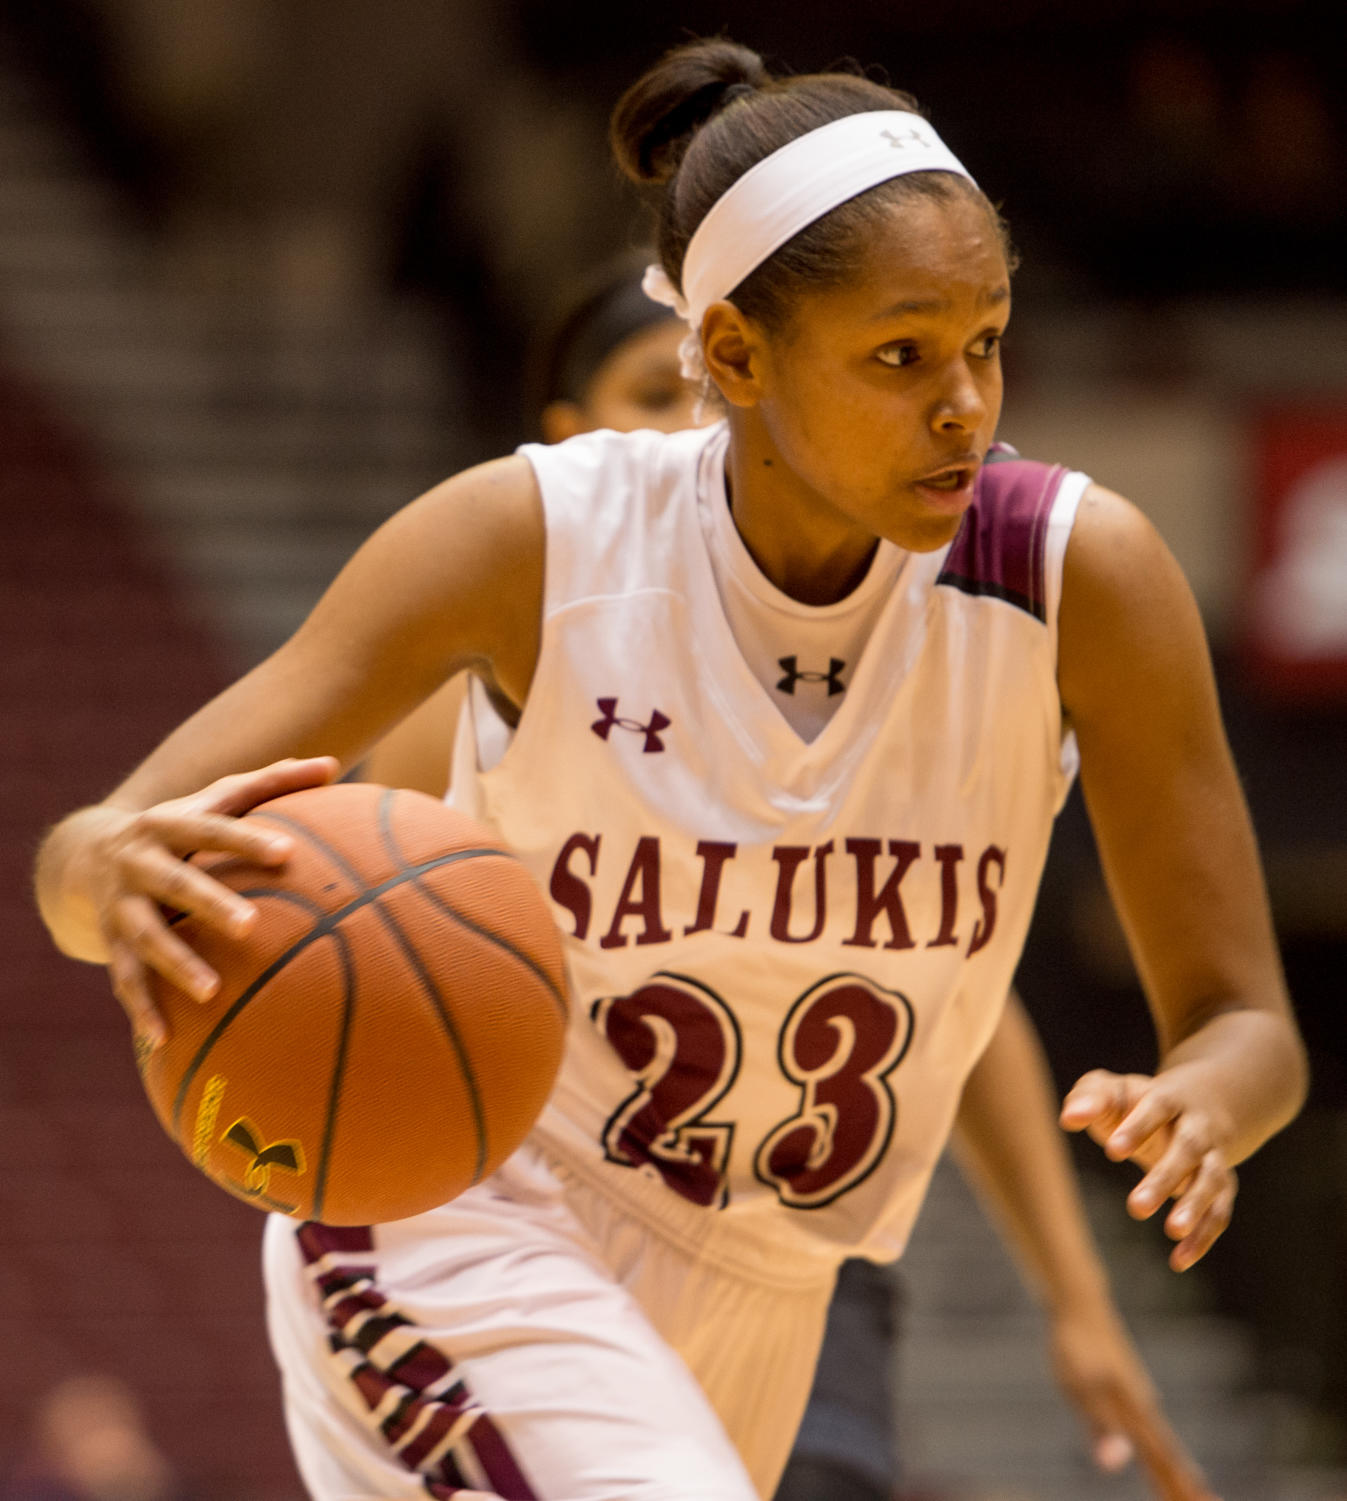 Sophomore+guard+Kristen+Nelson+pushes+up+the+court+Monday%2C+Nov.+27%2C+2017%2C+during+the+Salukis%27+57-53+loss+to+the+SIU+Edwardsville+Cougars+at+SIU+Arena.+%28Brian+Mu%C3%B1oz+%7C+%40BrianMMunoz%29